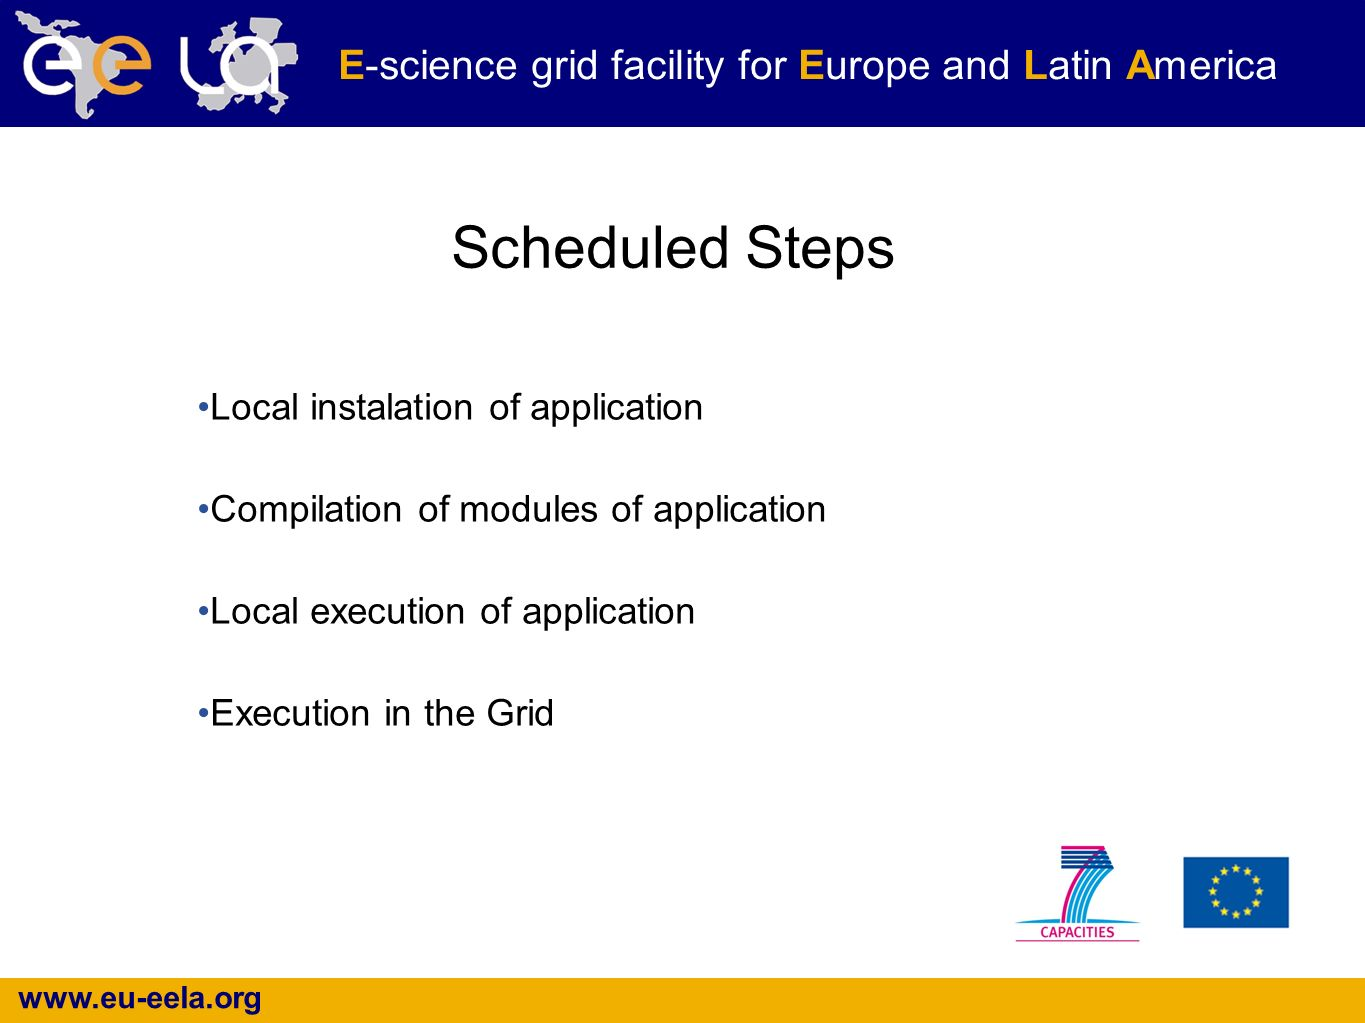 www.eu-eela.org E-science grid facility for Europe and Latin America Scheduled Steps Local instalation of application Compilation of modules of application Local execution of application Execution in the Grid